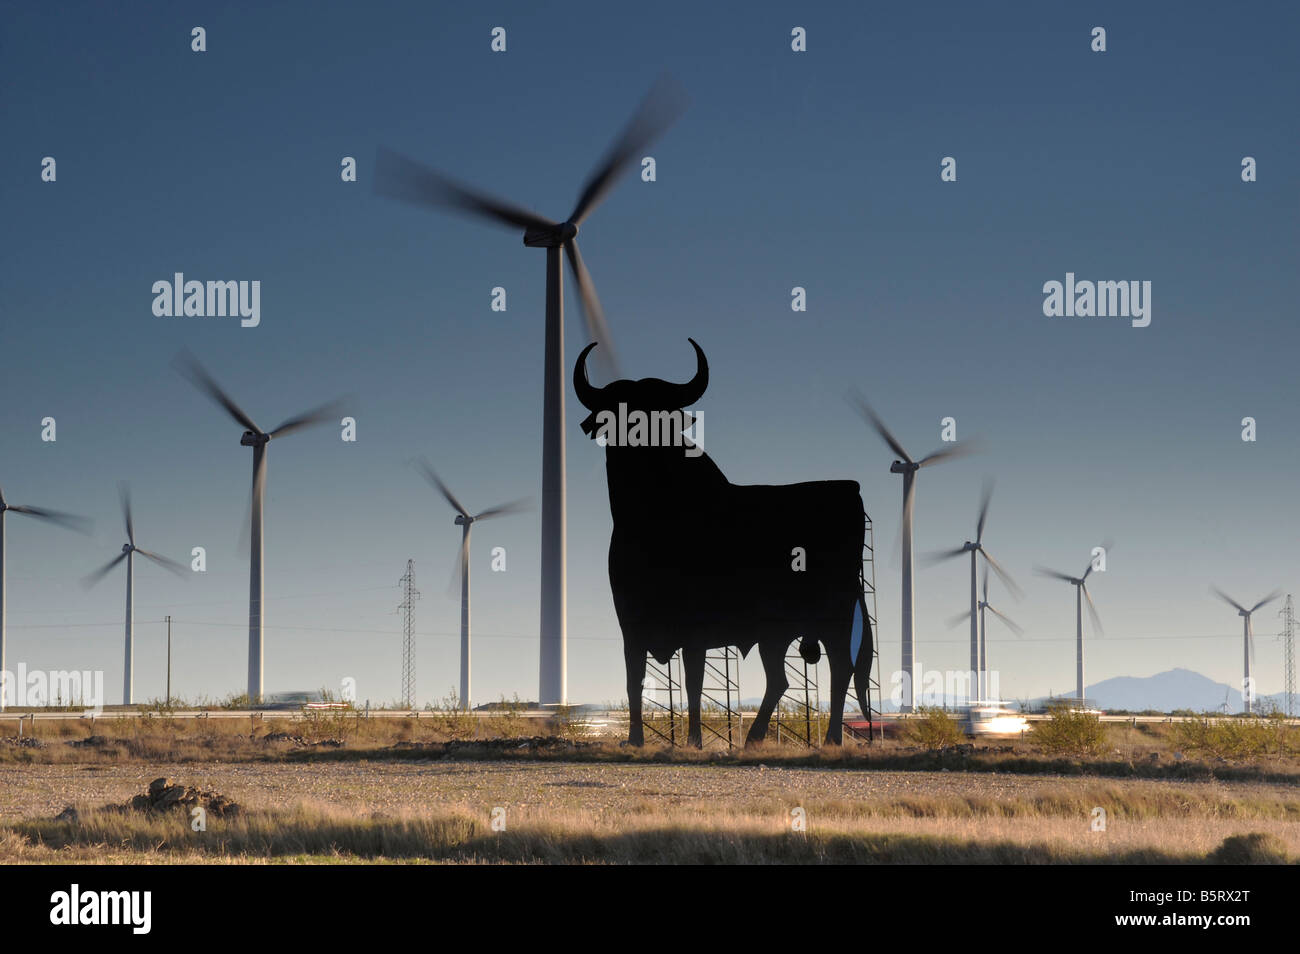 Two cars are a blurr beneath Wind turbines and the Spanish roadside bull or Toro de Osborne in Spain - Stock Image